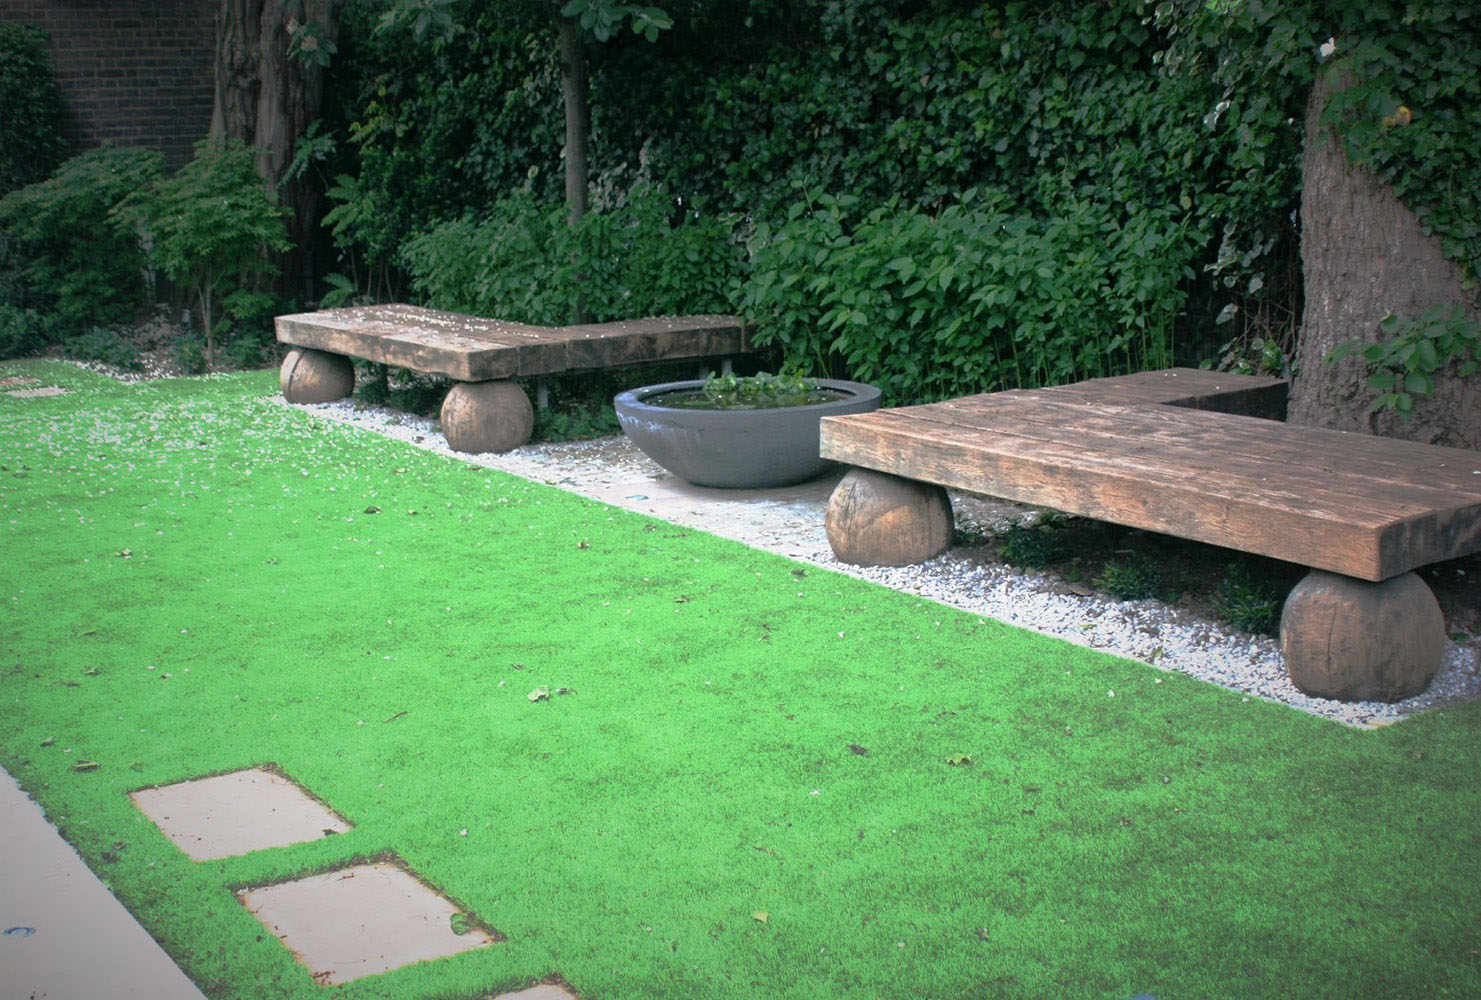 City Retreat Garden London. Bespoke sculptural seating and planter next to lawn. Rae Wilkinson Garden and Landscape Design - Garden Designer Sussex, Surrey, London, South-East England